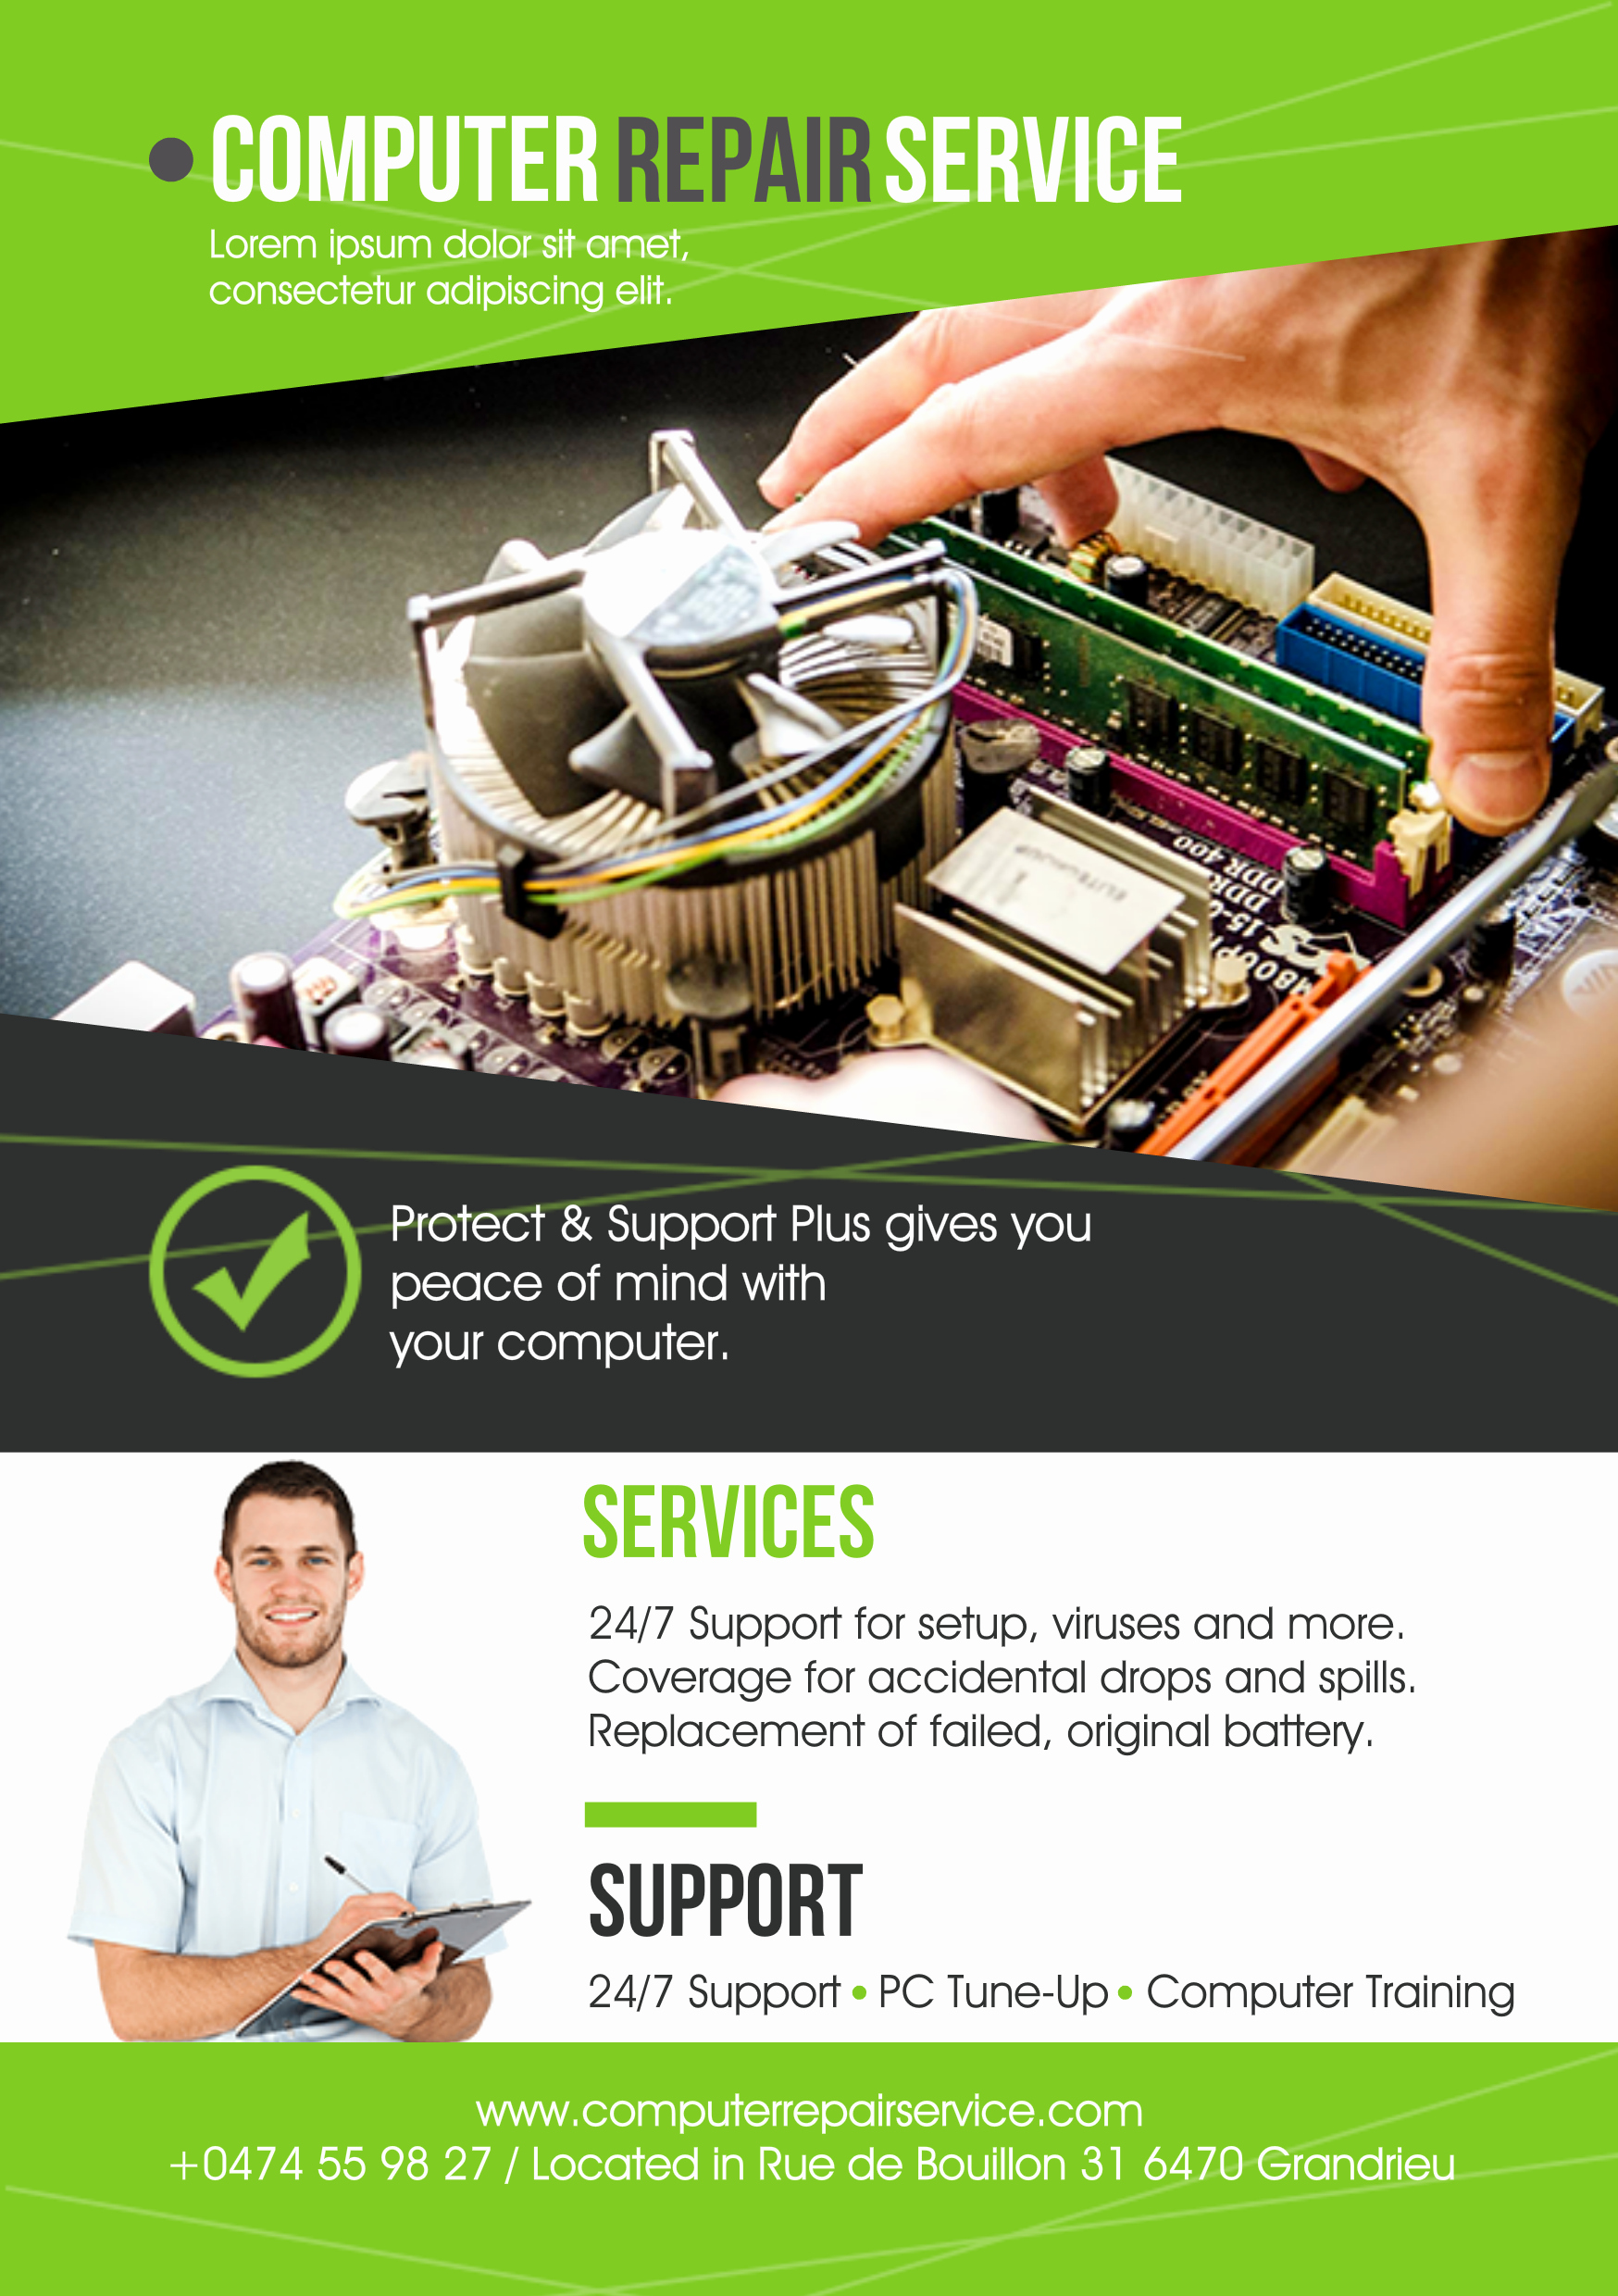 Computer Repair Flyer Templates Elegant Puter Repair A5 Promotional Flyer Premadevideos